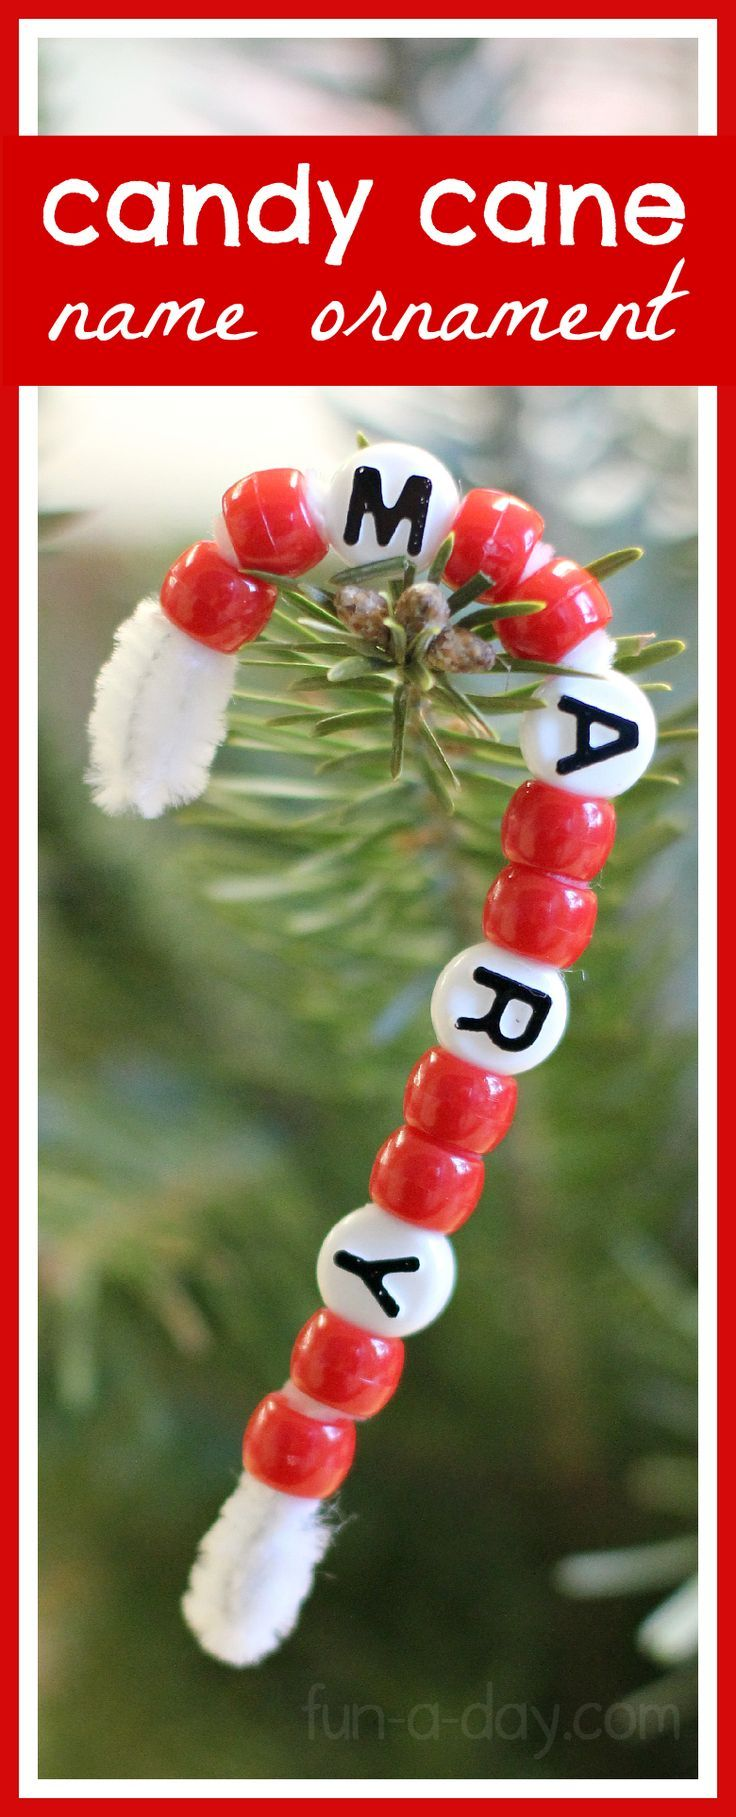 Name christmas ornaments - 25 Best Ideas About Family Christmas Ornaments On Pinterest Diy Christmas Ornaments Diy Ornaments And Diy Ornaments For Kids